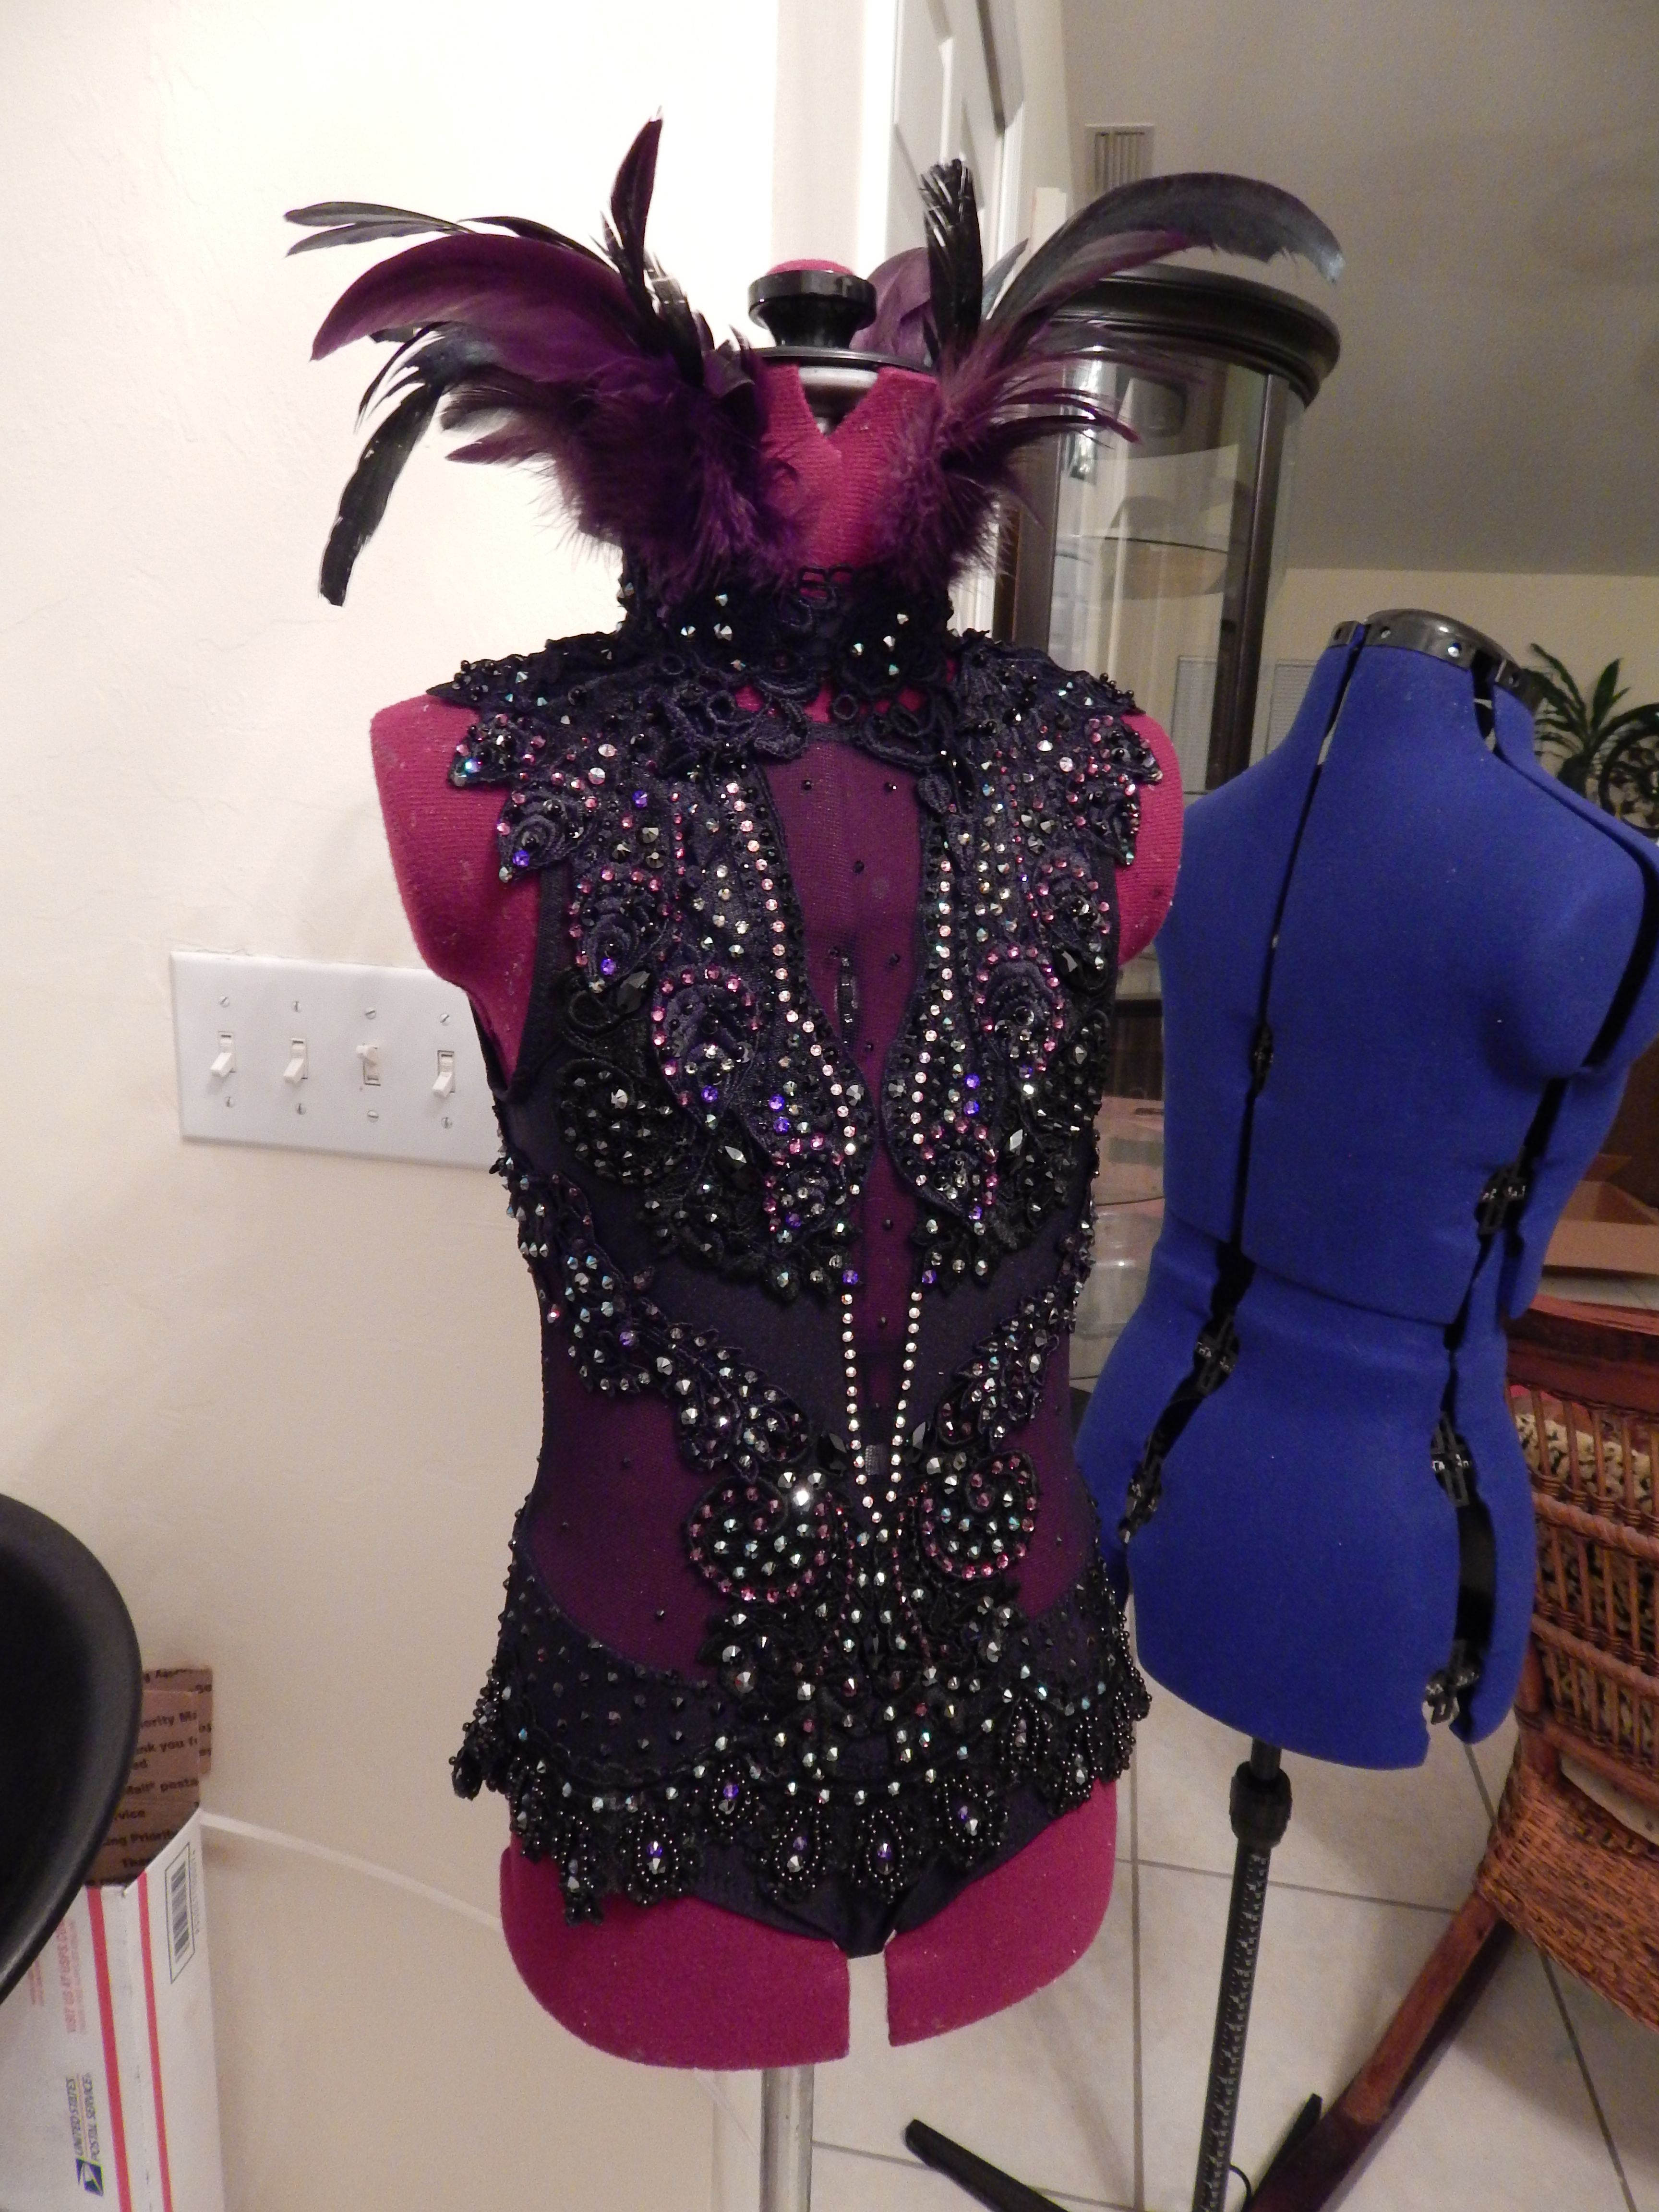 9820513df588d my design for 'Maleficent' Malificent Costume, Lyrical Dance Dresses, Jazz  Costumes,